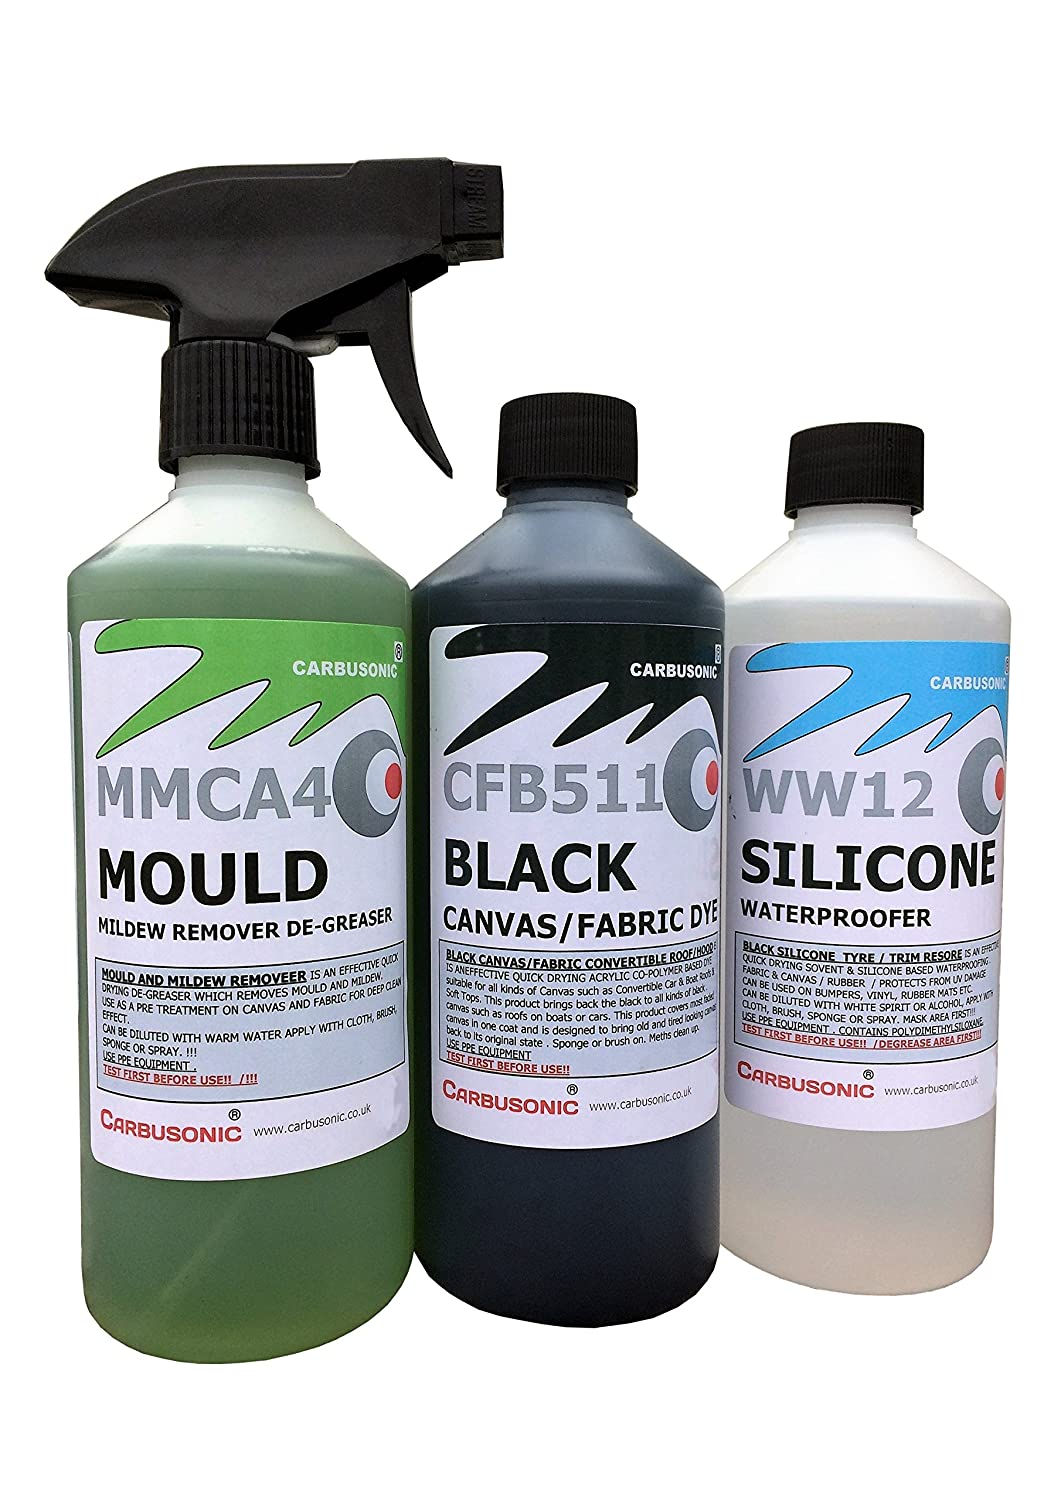 e76d40de54d5 Carbusonic Convertible roof cleaner kit